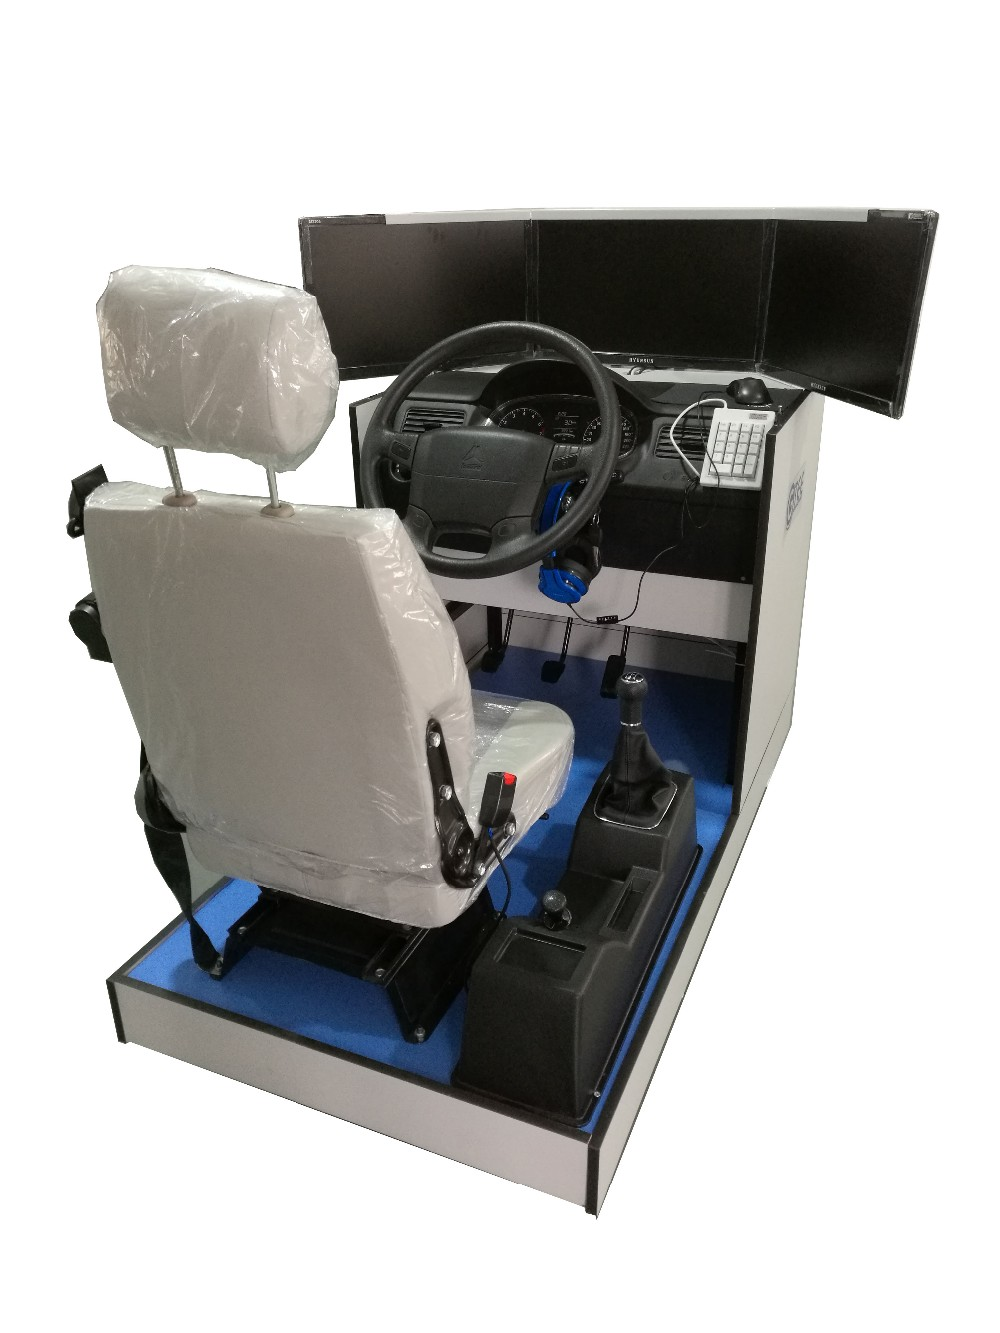 Standard truck driving simulator(3 screens)/Automobile driving simulator for vocational school